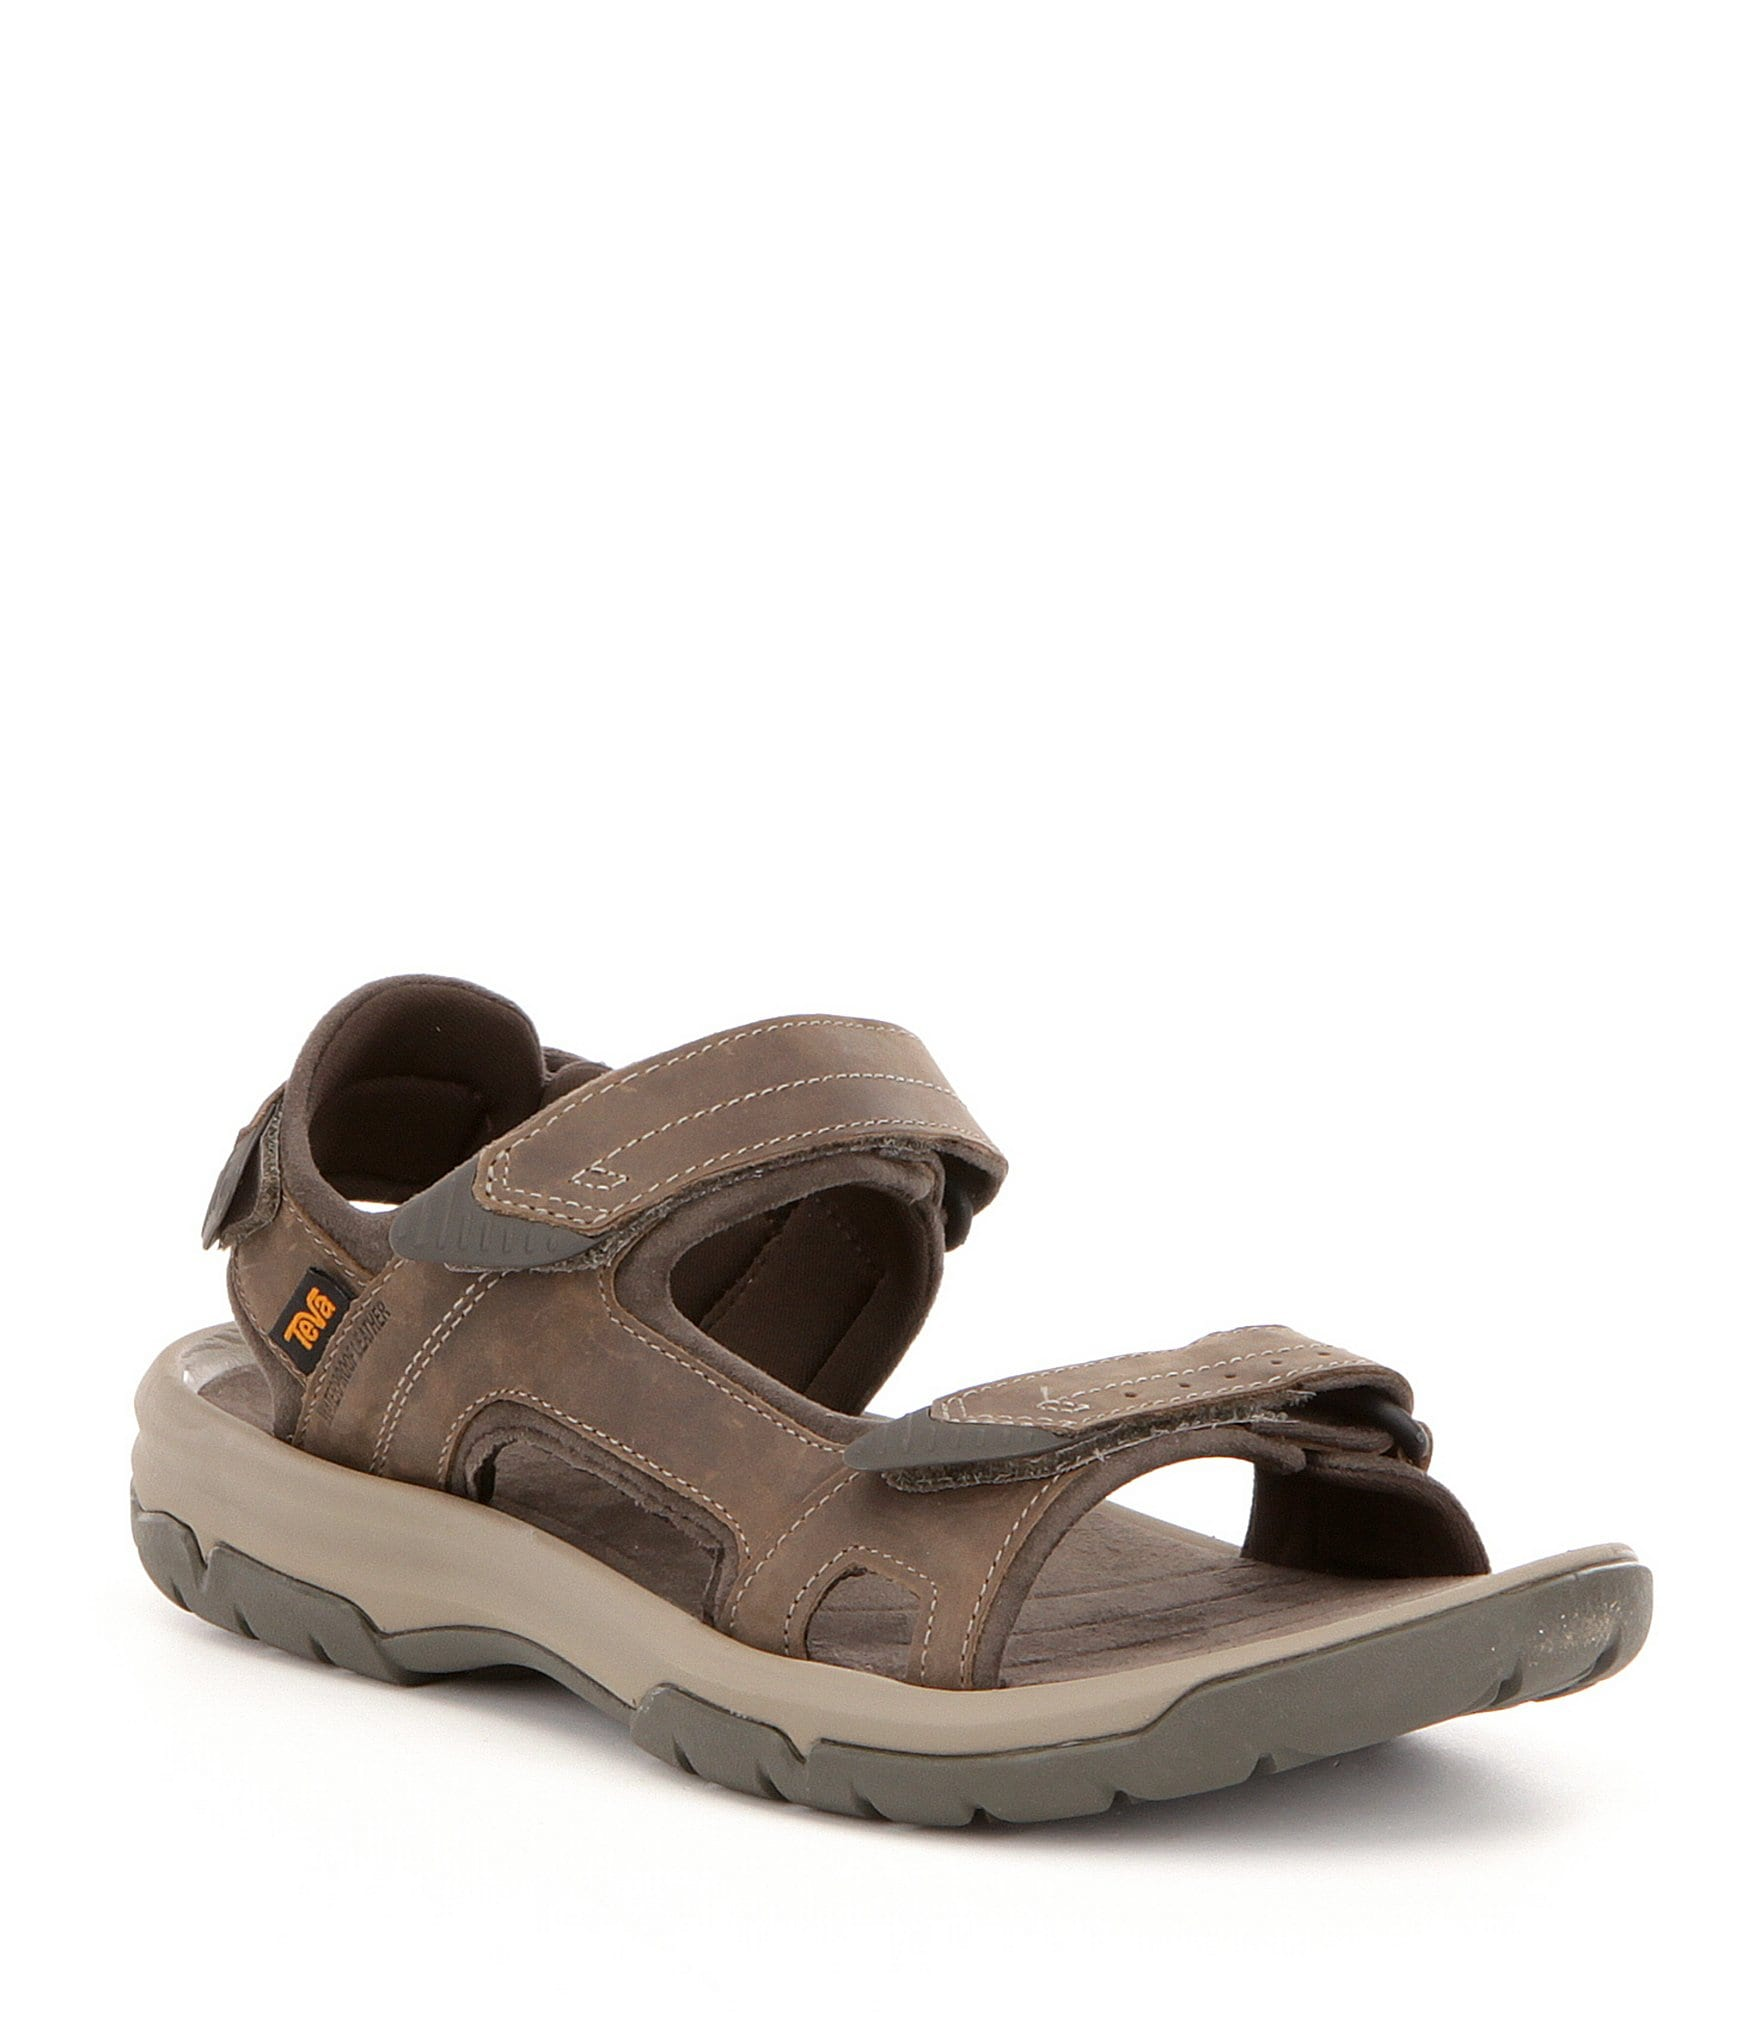 88169c1f4aba Teva Men s Langdon Waterproof Sandals